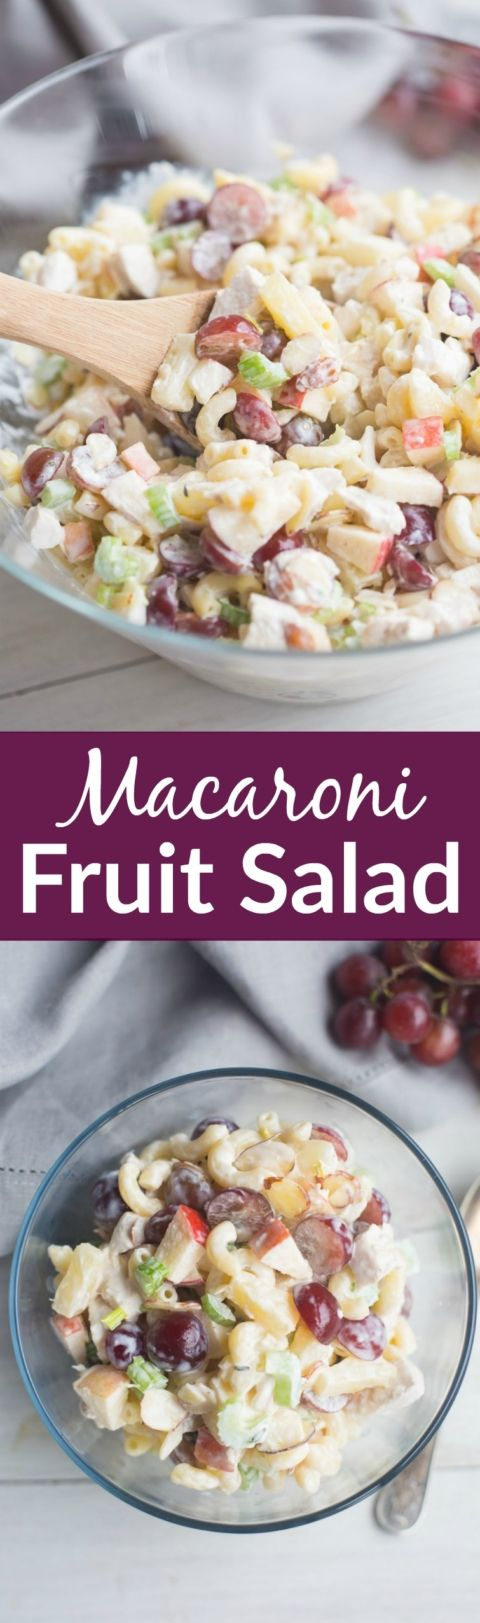 Creamy Macaroni Fruit Salad with a wonderful sweet and tangy crunch and combination of flavors perfect for a potluck meal or easy side dish! | Tastes Better From Scratch